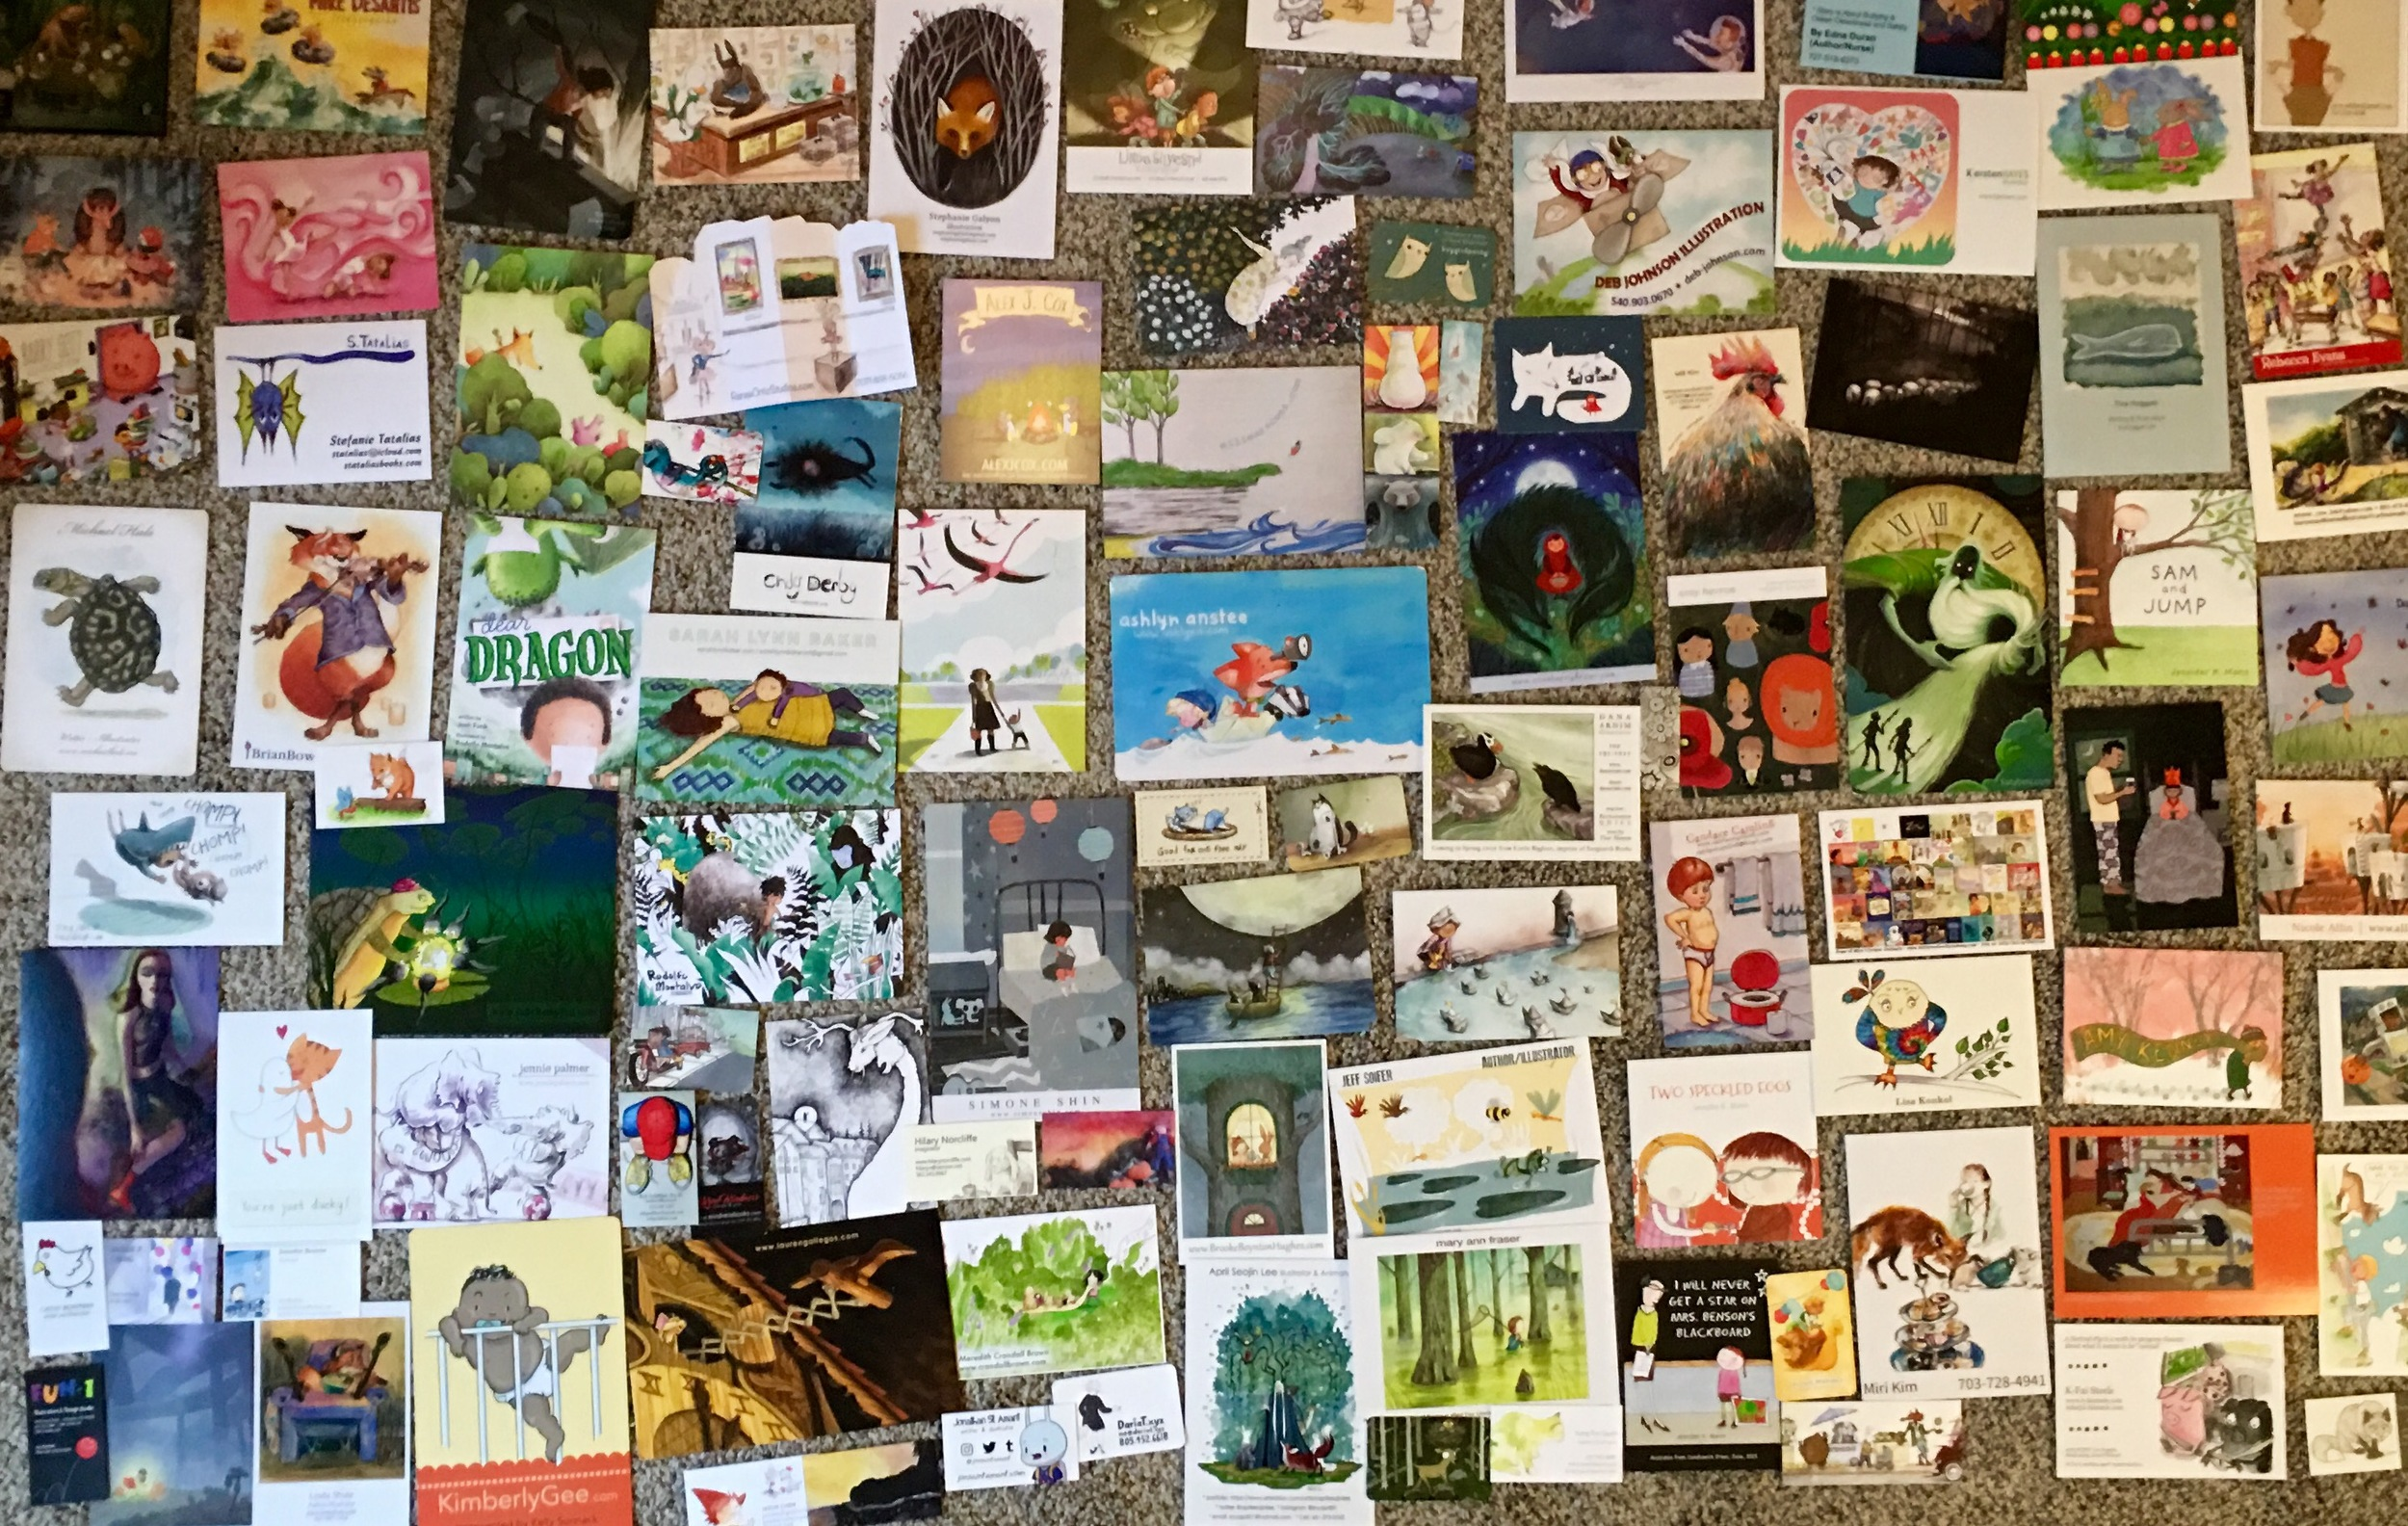 Illustrator promo cards! One of my favorites parts of attending SCBWI conferences. It feels so special to meet other artists and take a bit of their art home.